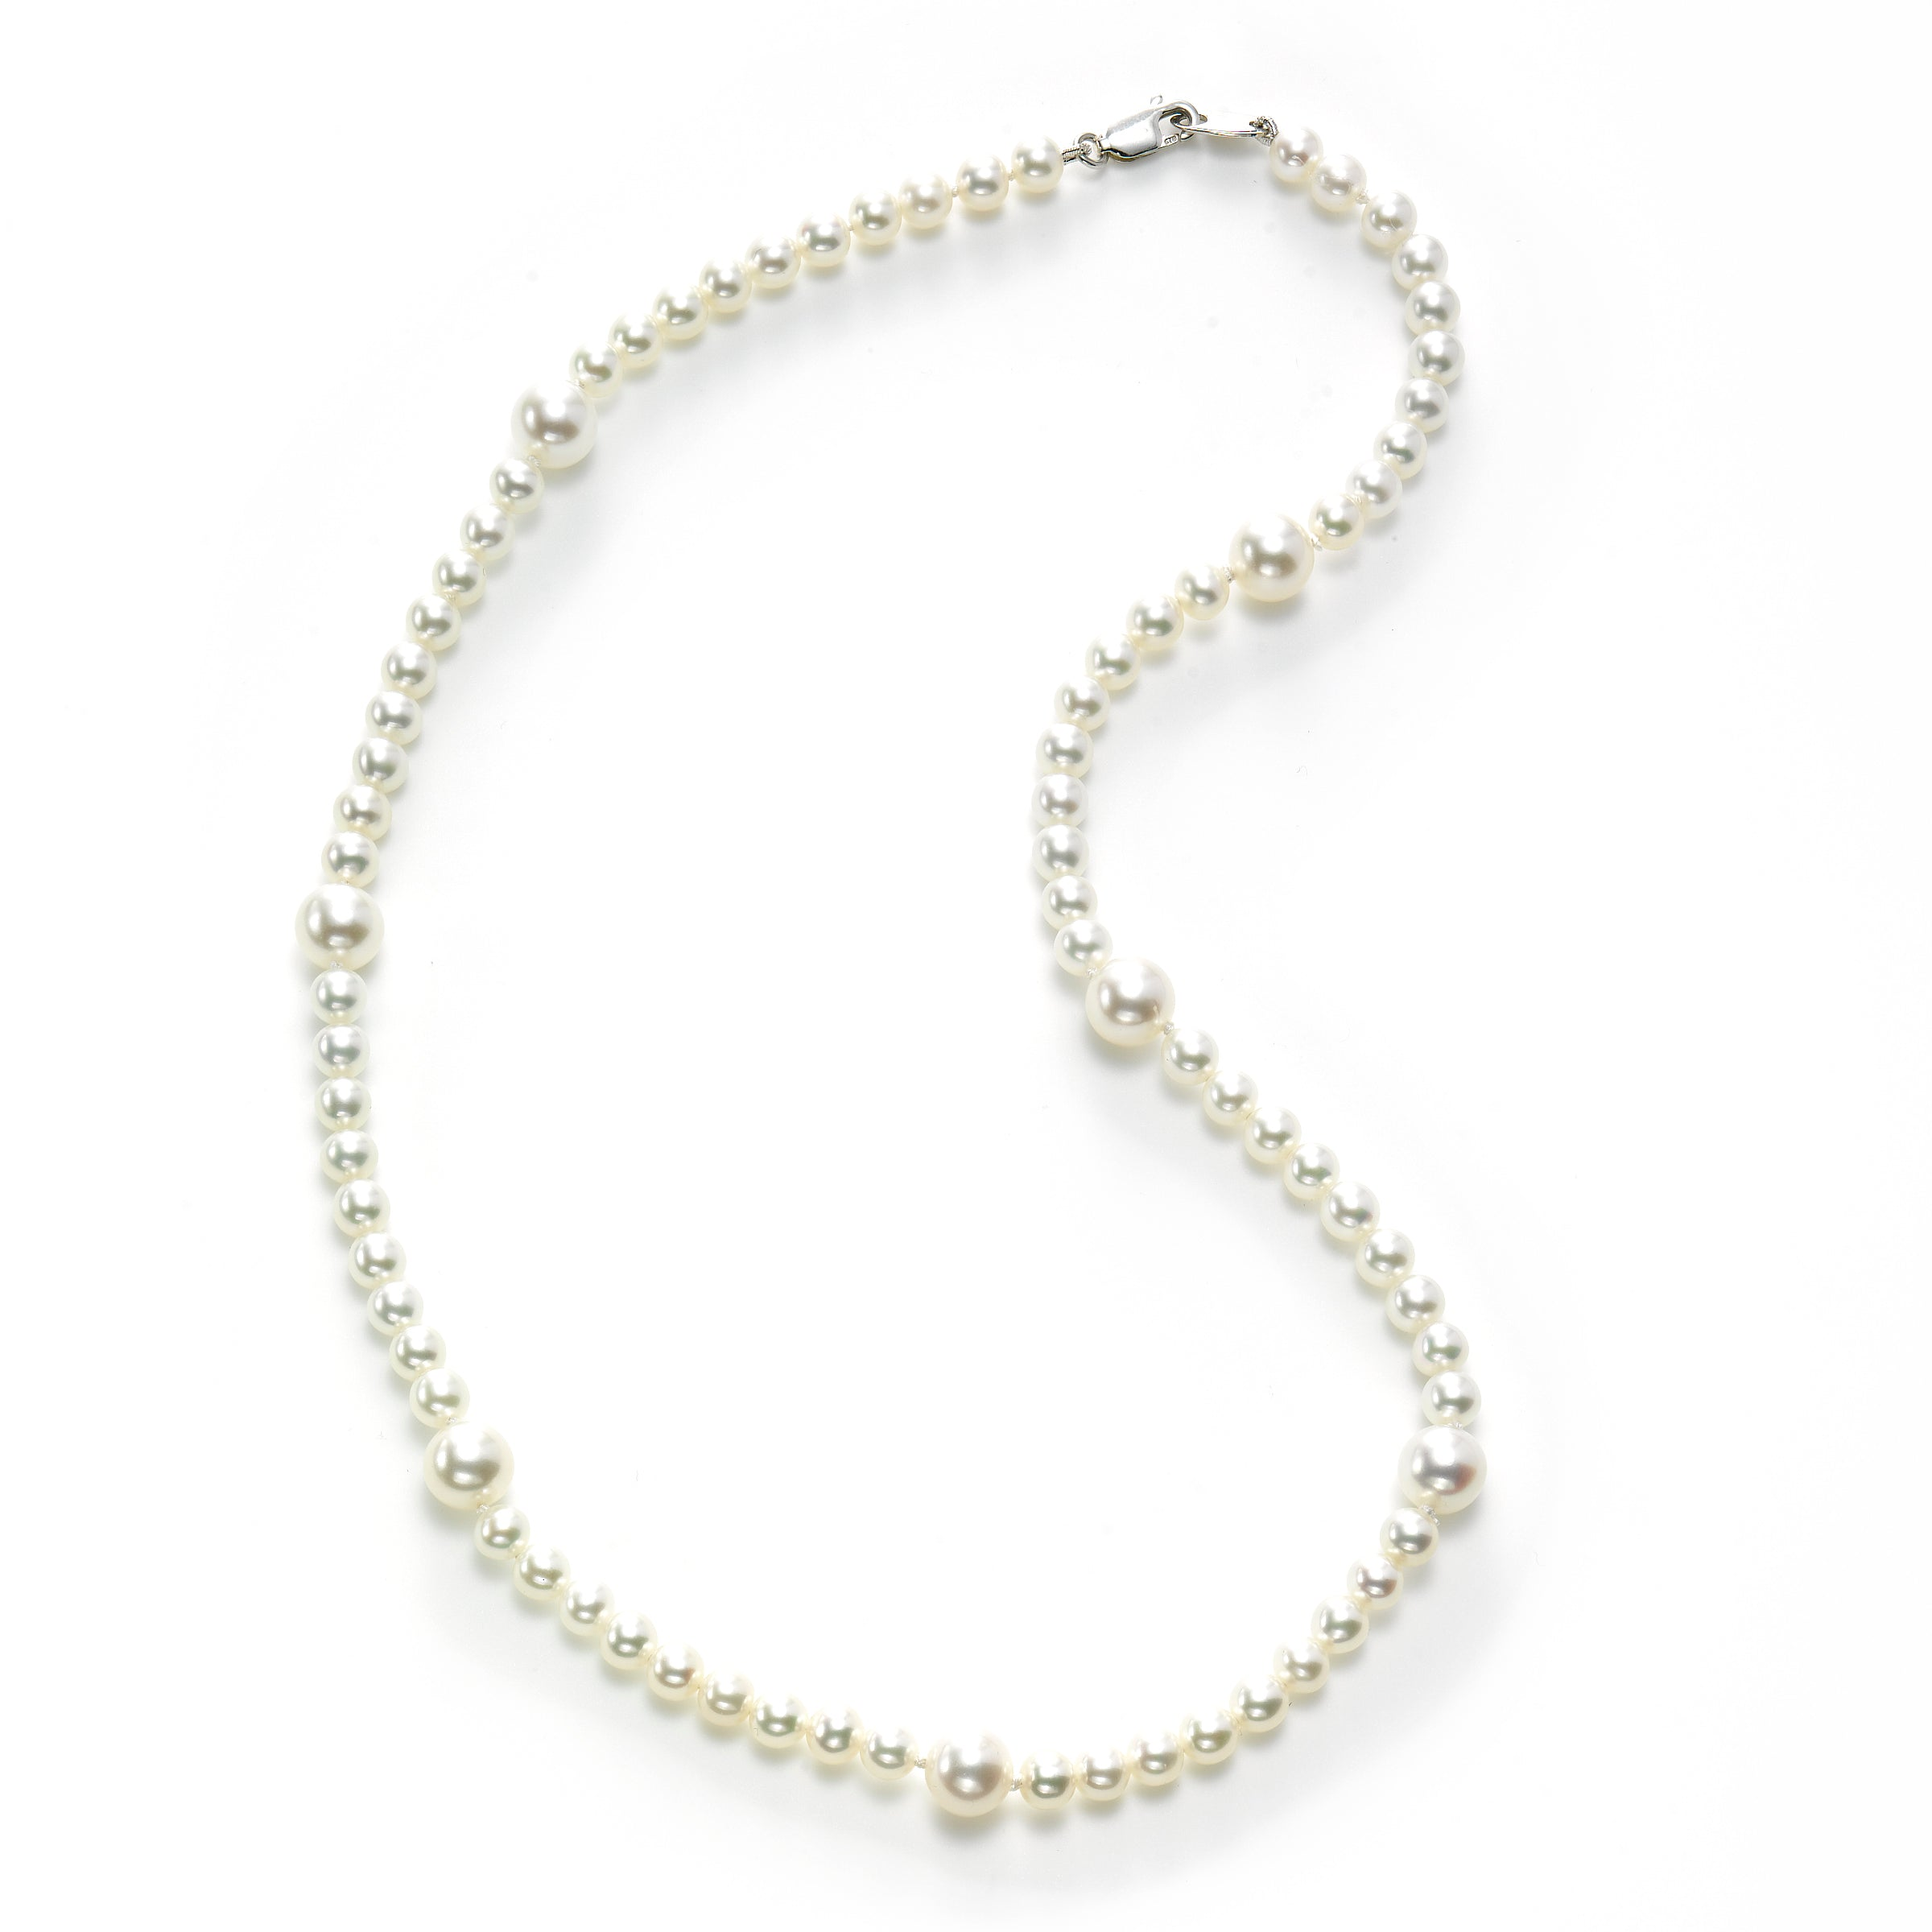 Freshwater Cultured Pearl Station Necklace, Sterling Silver